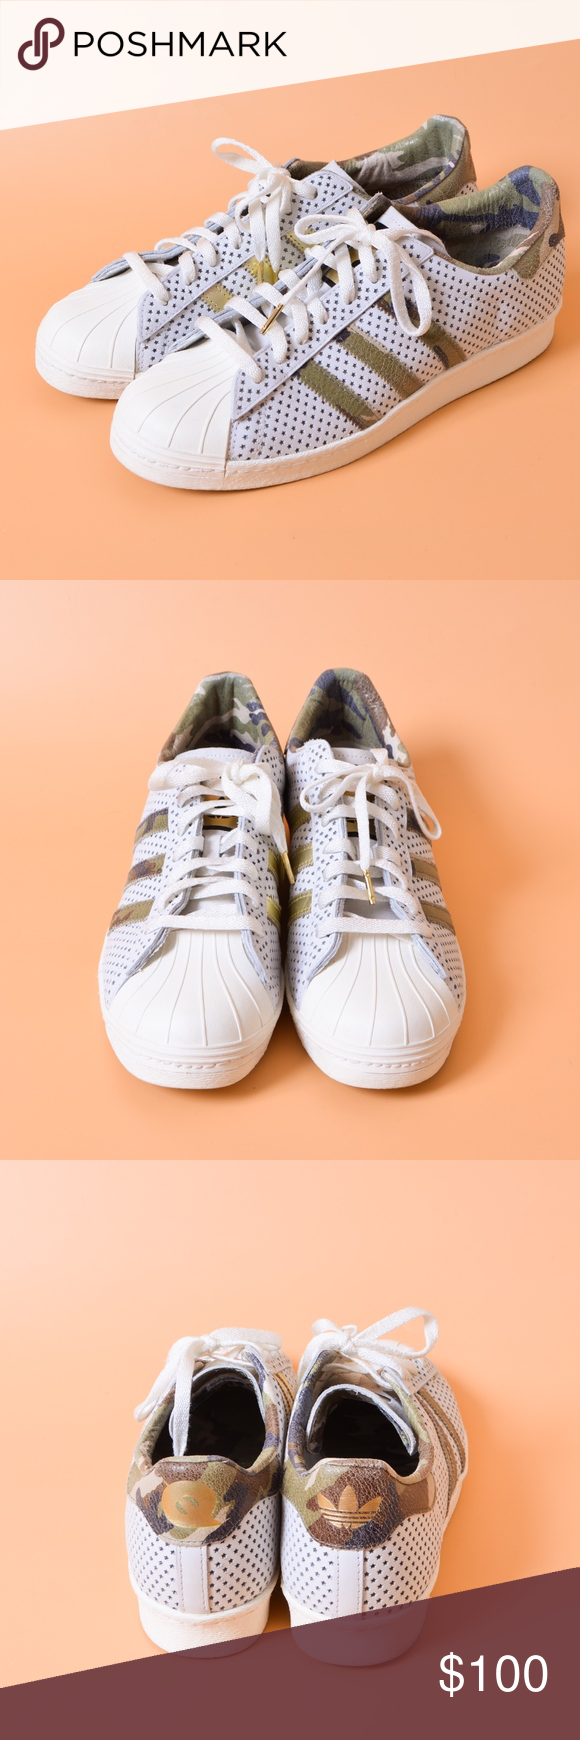 4a4050adaacf Adidas Superstar 80s Quickstrike Q16292 White Camo New with out tag and  box. Complex s Quickstrike